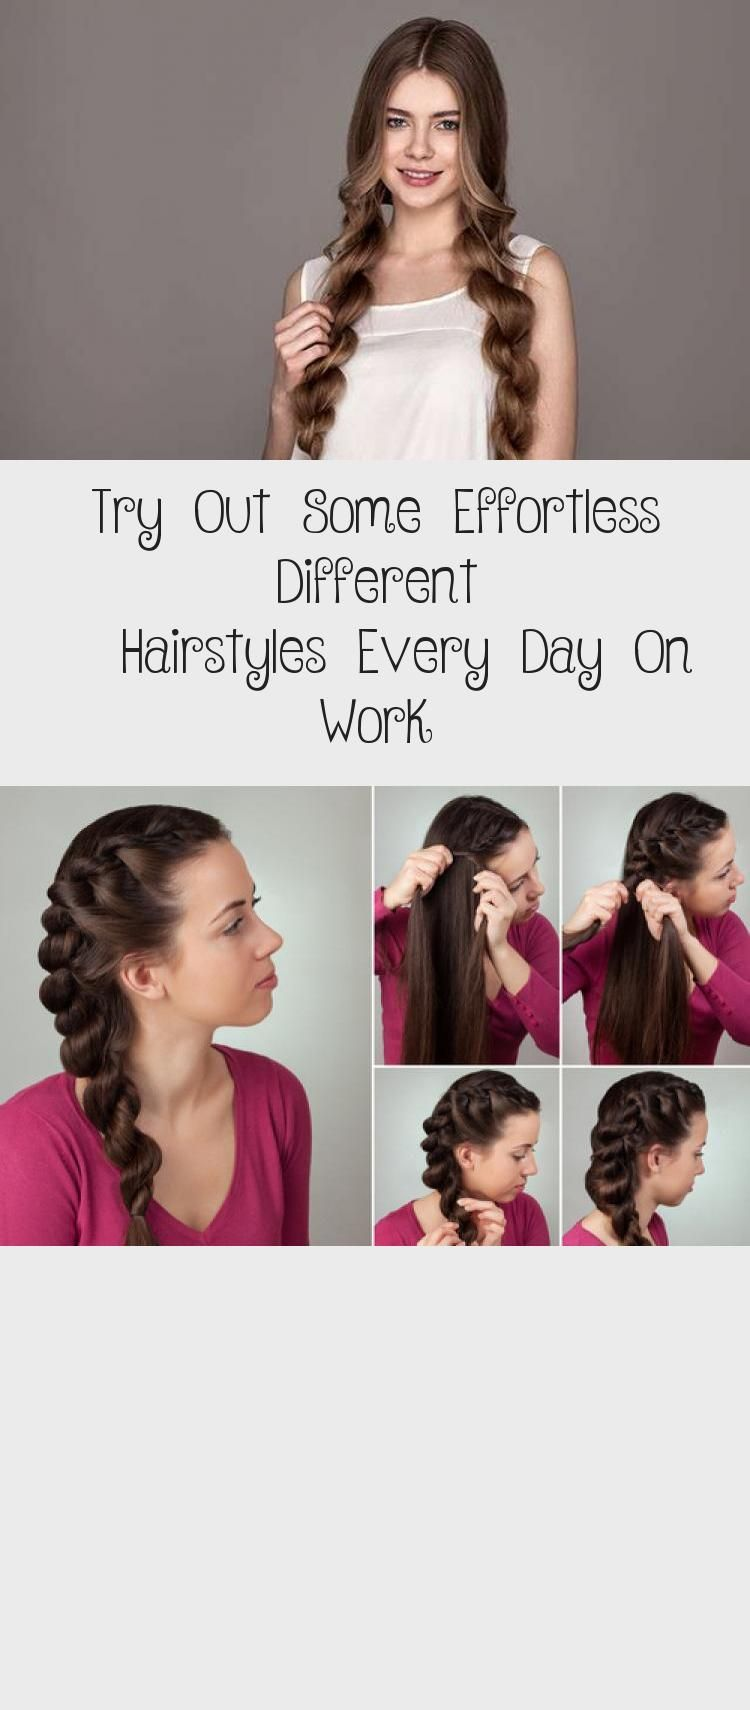 Try Out Some Effortless Different Hairstyles Every Day On Work 7 Easy Everyday Hairstyles For Each Day O In 2020 Everyday Hairstyles Hair Styles Different Hairstyles